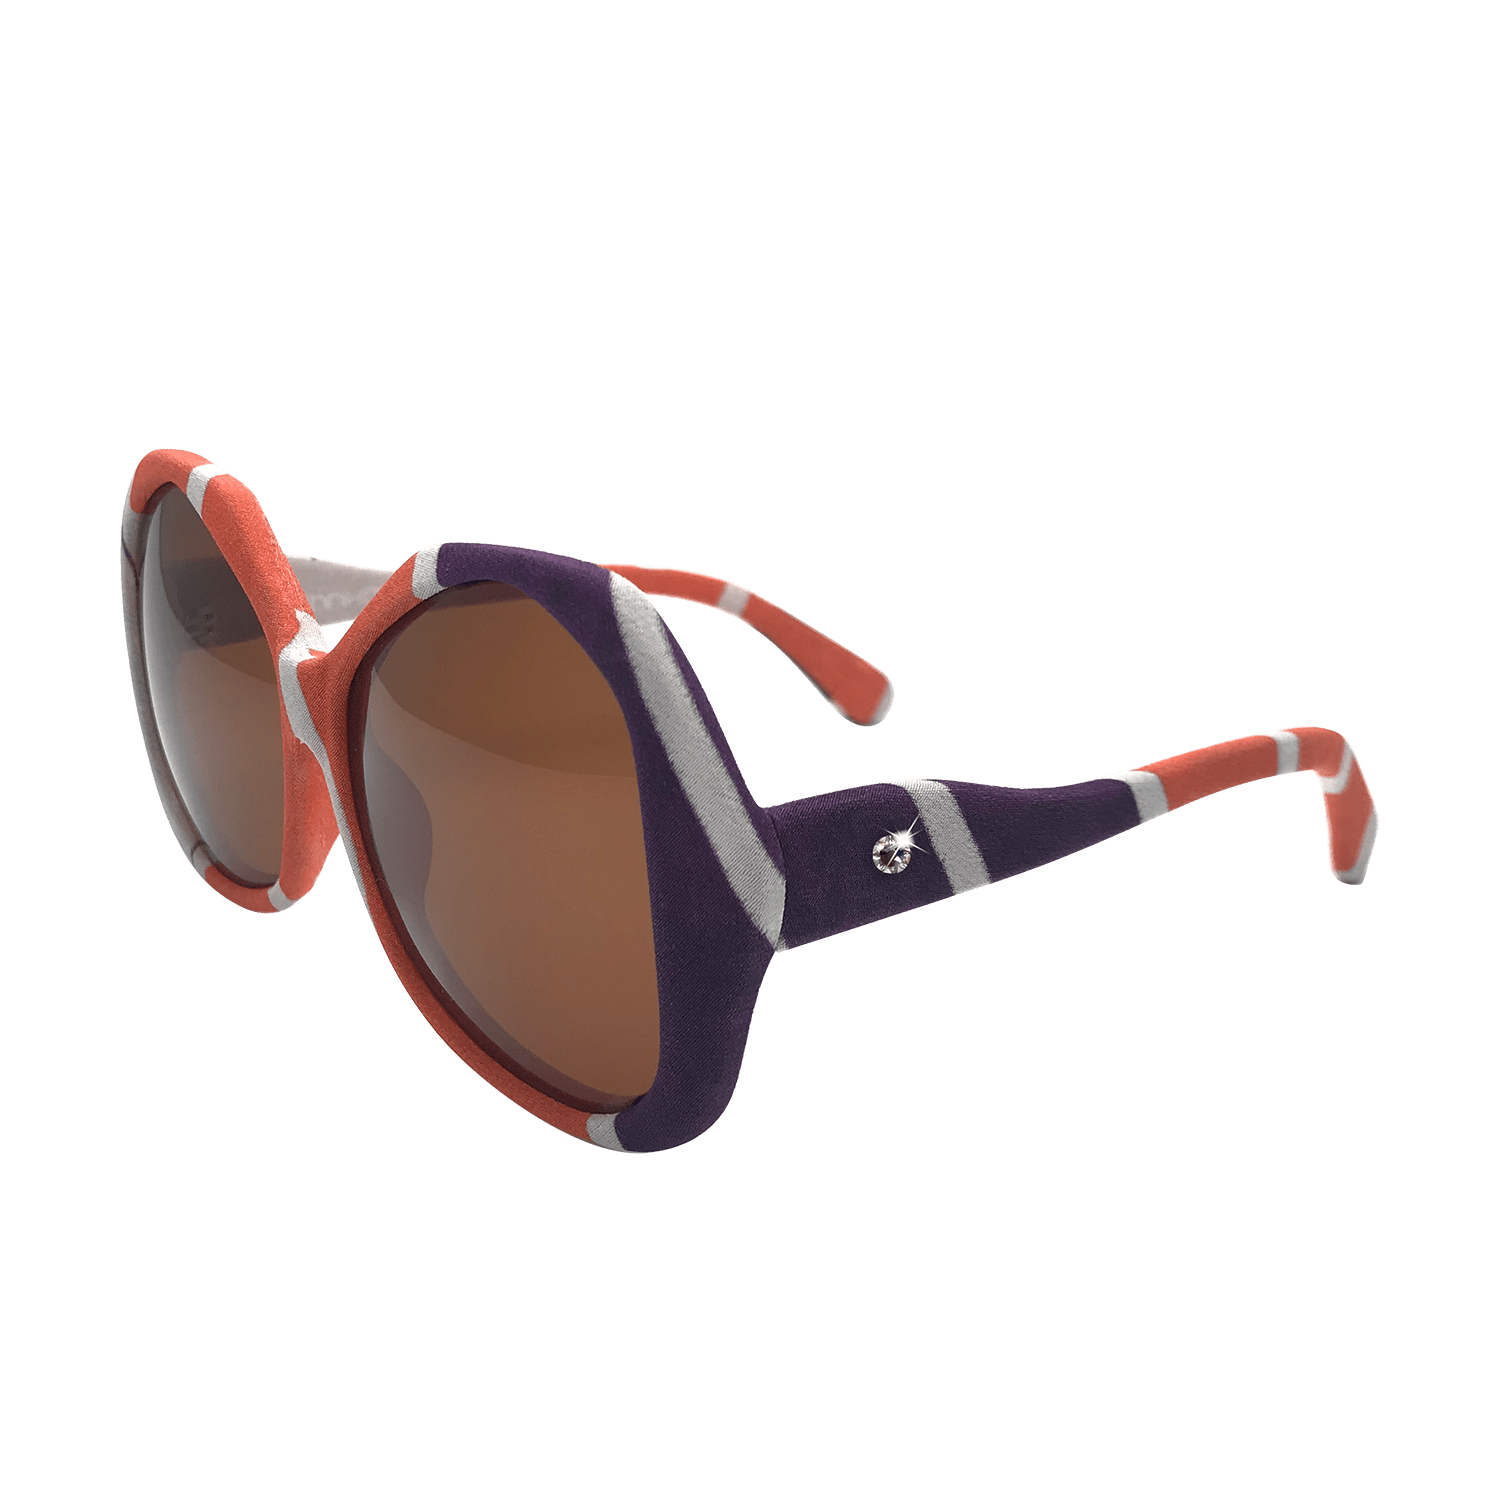 【CONTOUR】Hand-made 100% Silk-wrapped Sunglasses UV400 - THE SPARKLE COLLECTION by GERMAN POOL